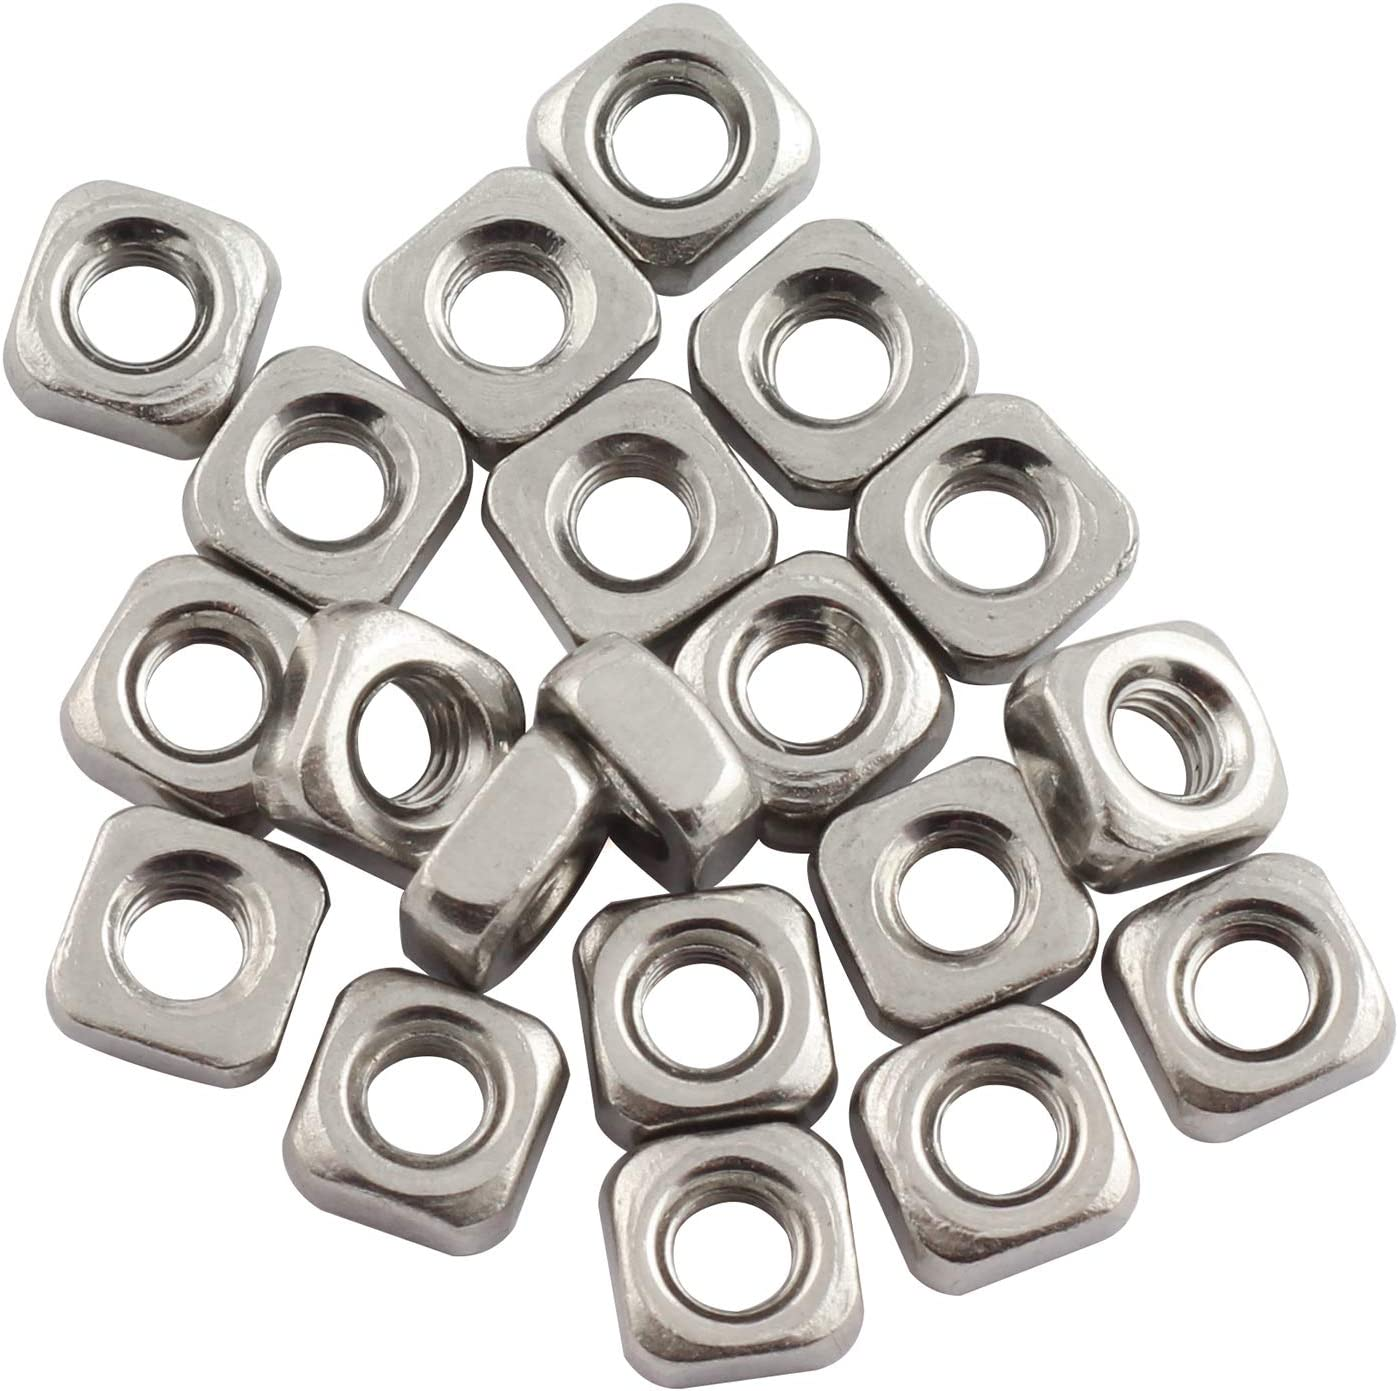 PSCCO 20pcs M3 Square Nuts 304 Luxury goods Nut Quadrate Fast Stainless 5 popular Steel